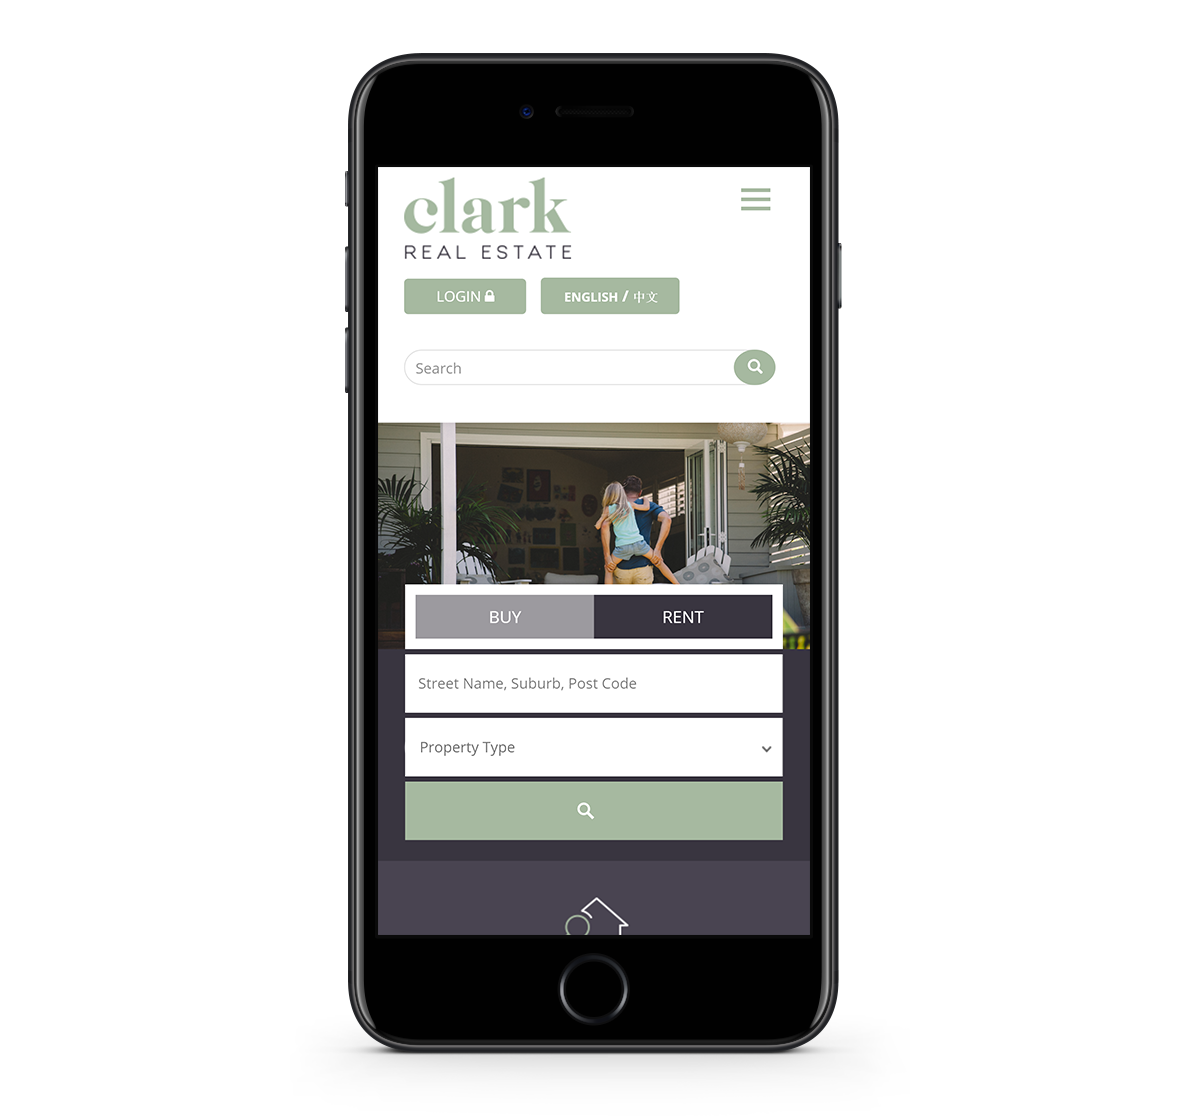 clark_redesign_iphone